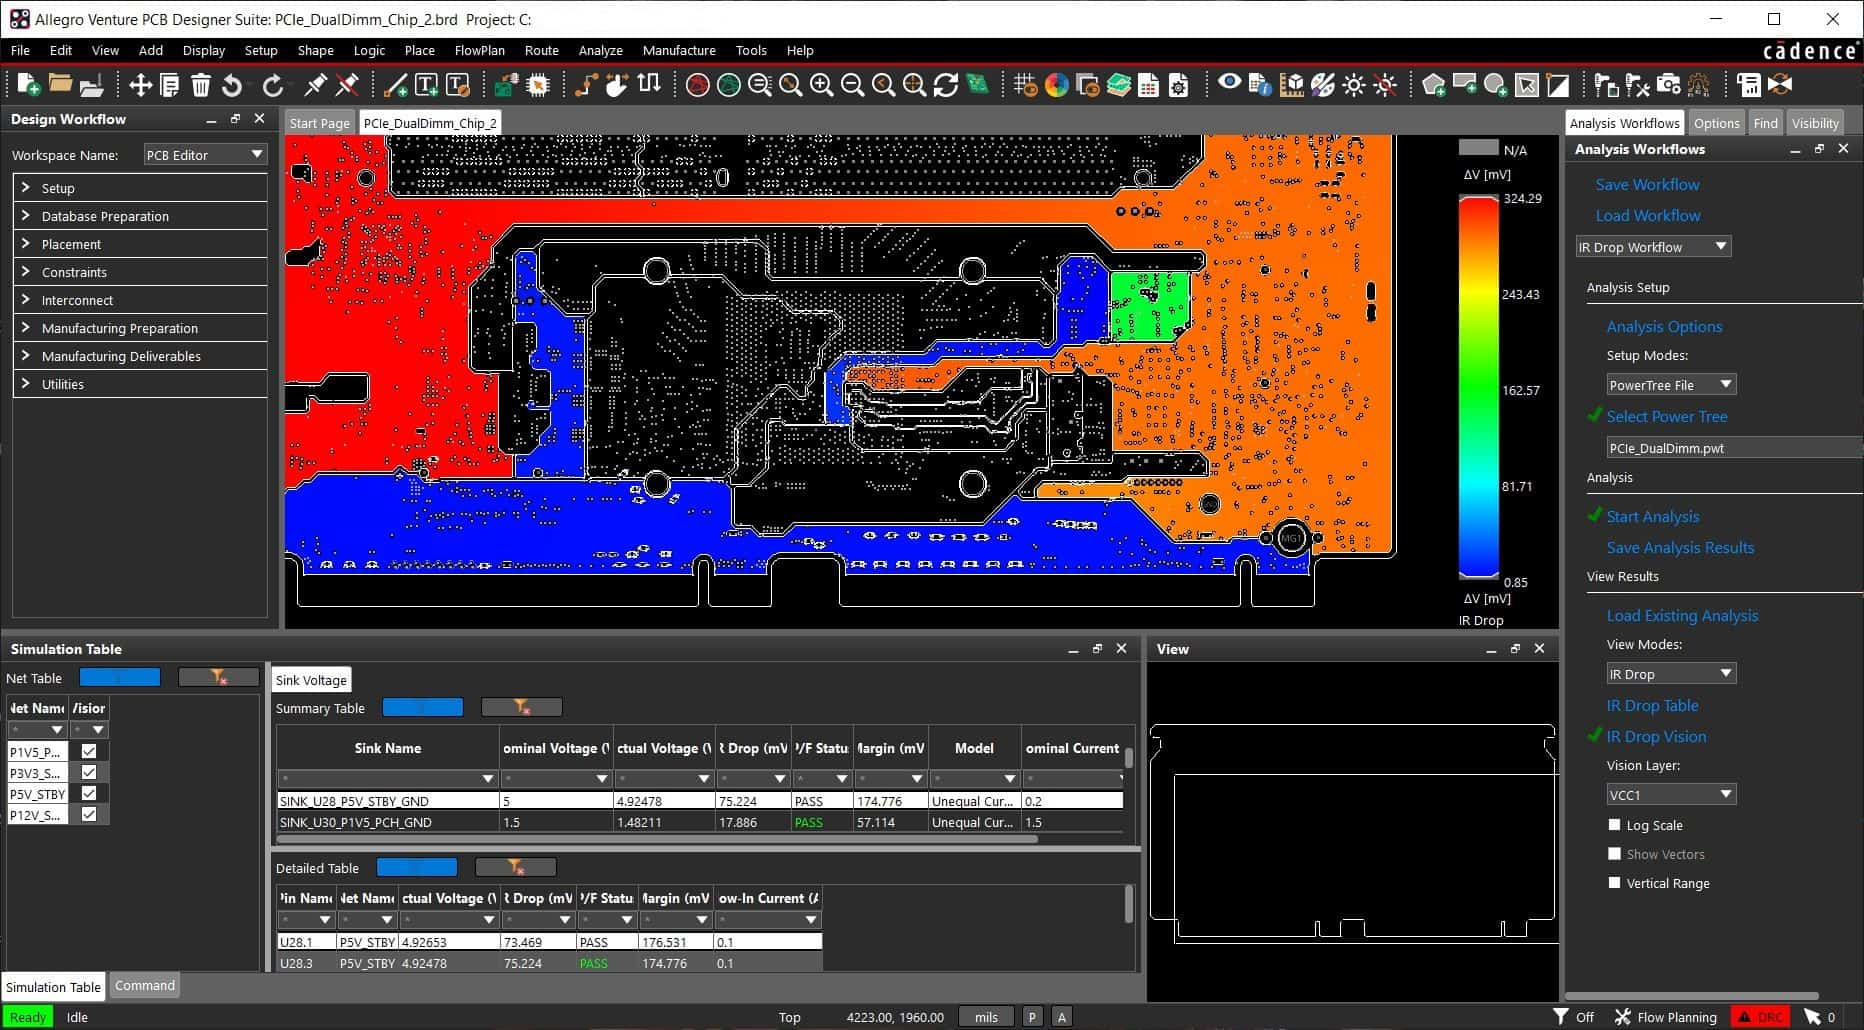 The IR Drop Vision in Cadence Allegro PCB design software